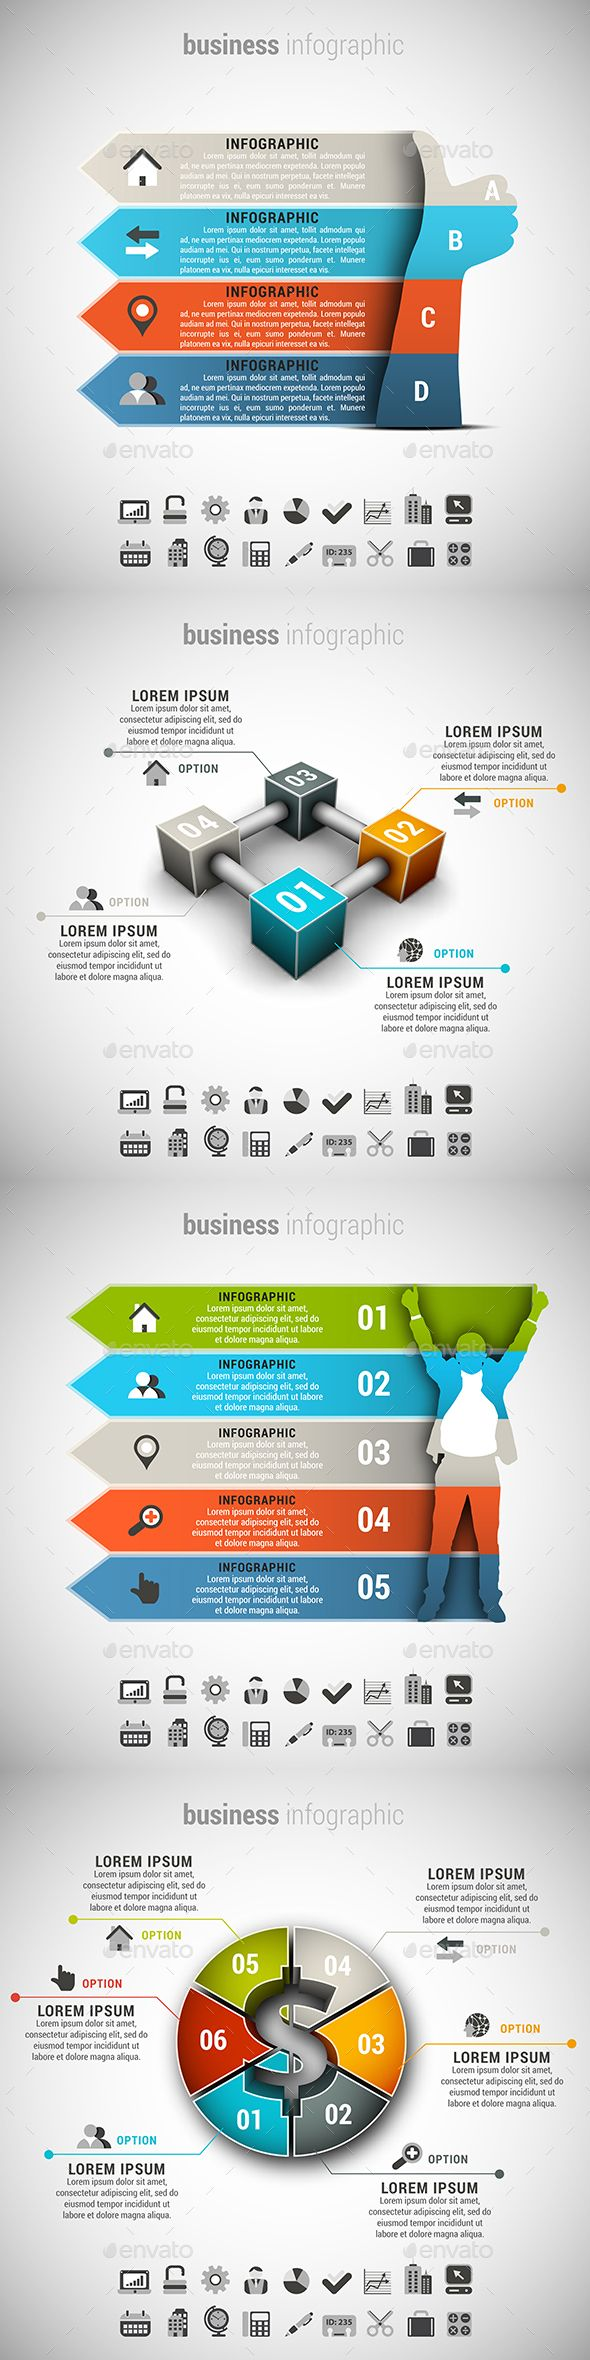 4 in 1 Business Infographics Bundle Template PSD, Vector EPS, AI. Download here: http://graphicriver.net/item/4-in-1-business-infographics-bundle/15021285?ref=ksioks